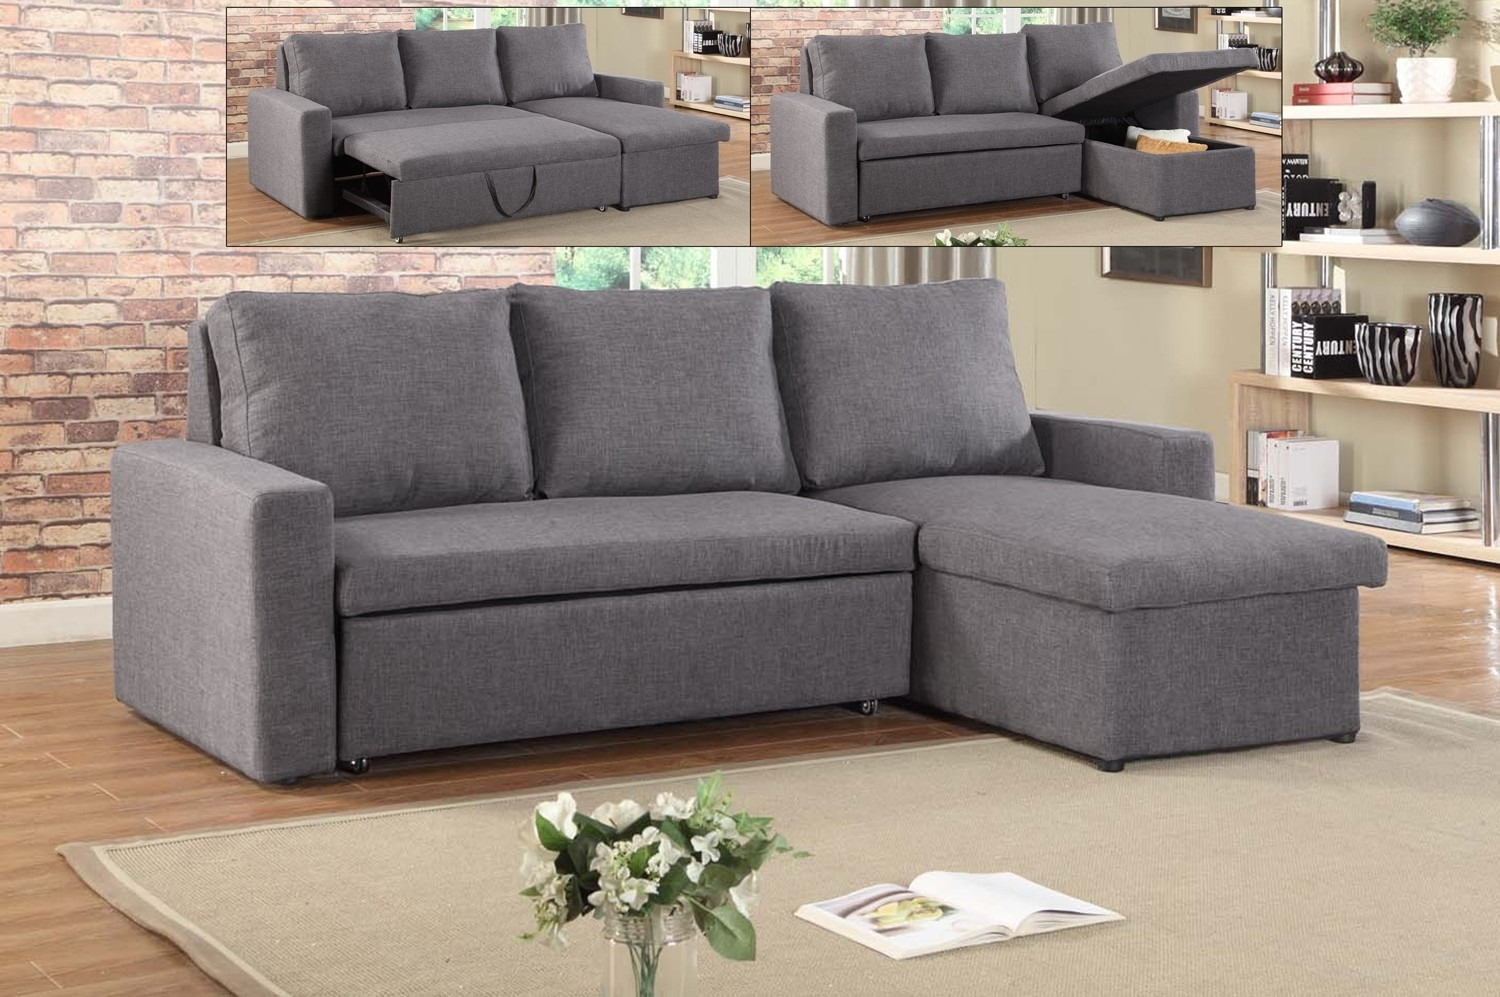 If-9000 -Sectional Sofa Bed With Reversible Chaise - Lowest Price pertaining to Sectional Sofas At Brampton (Image 6 of 15)